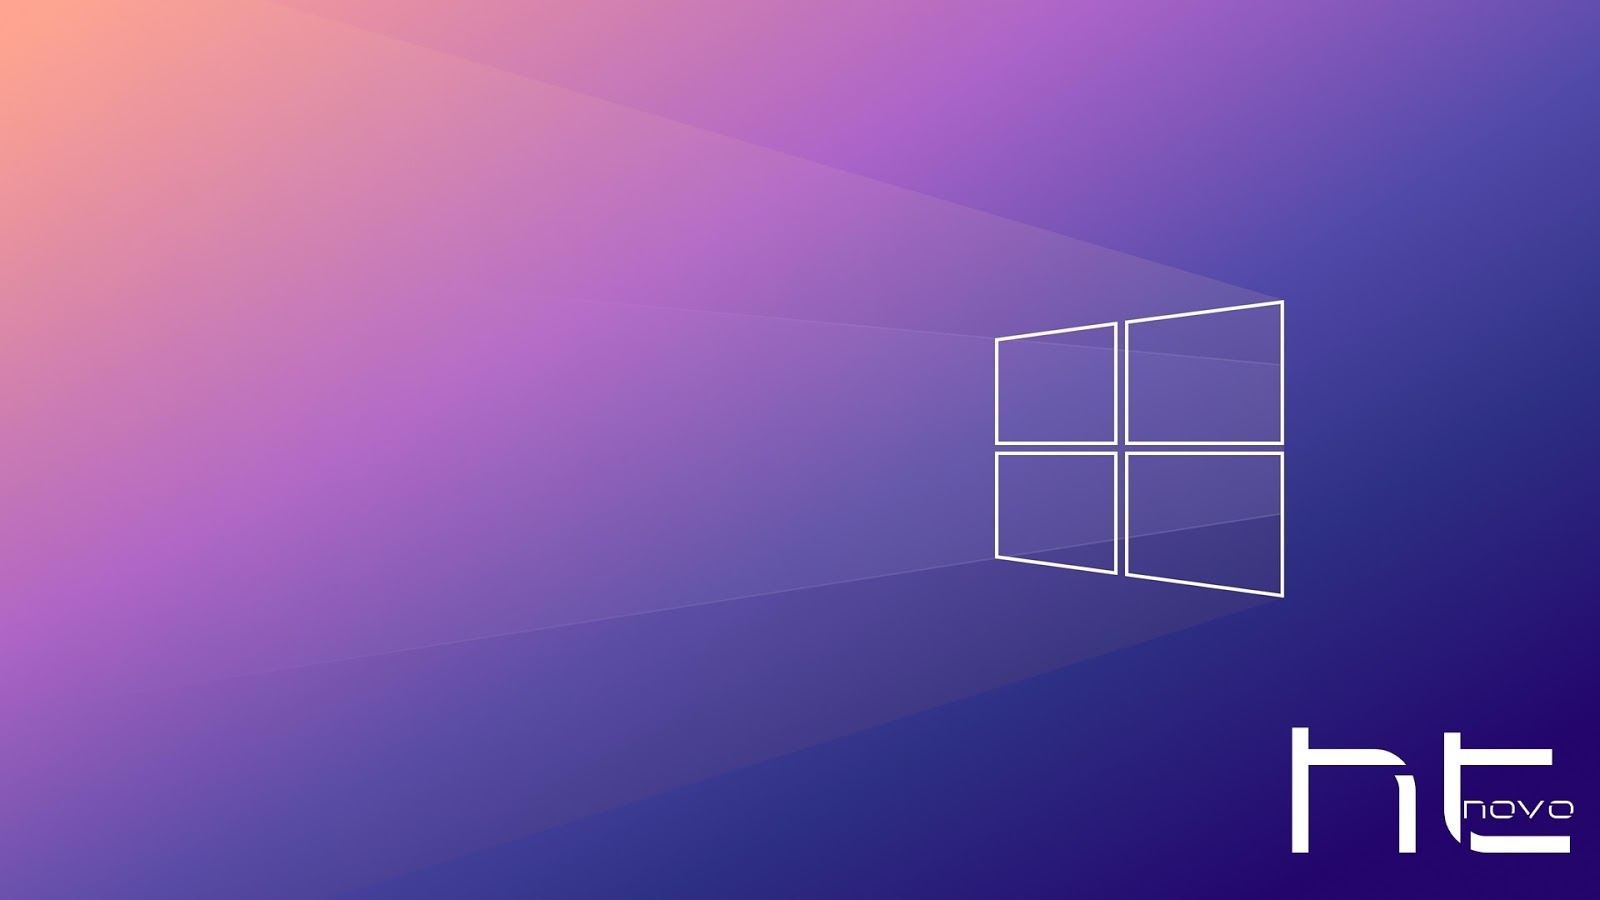 Download ISO ufficiali Windows 10 Versione 2004